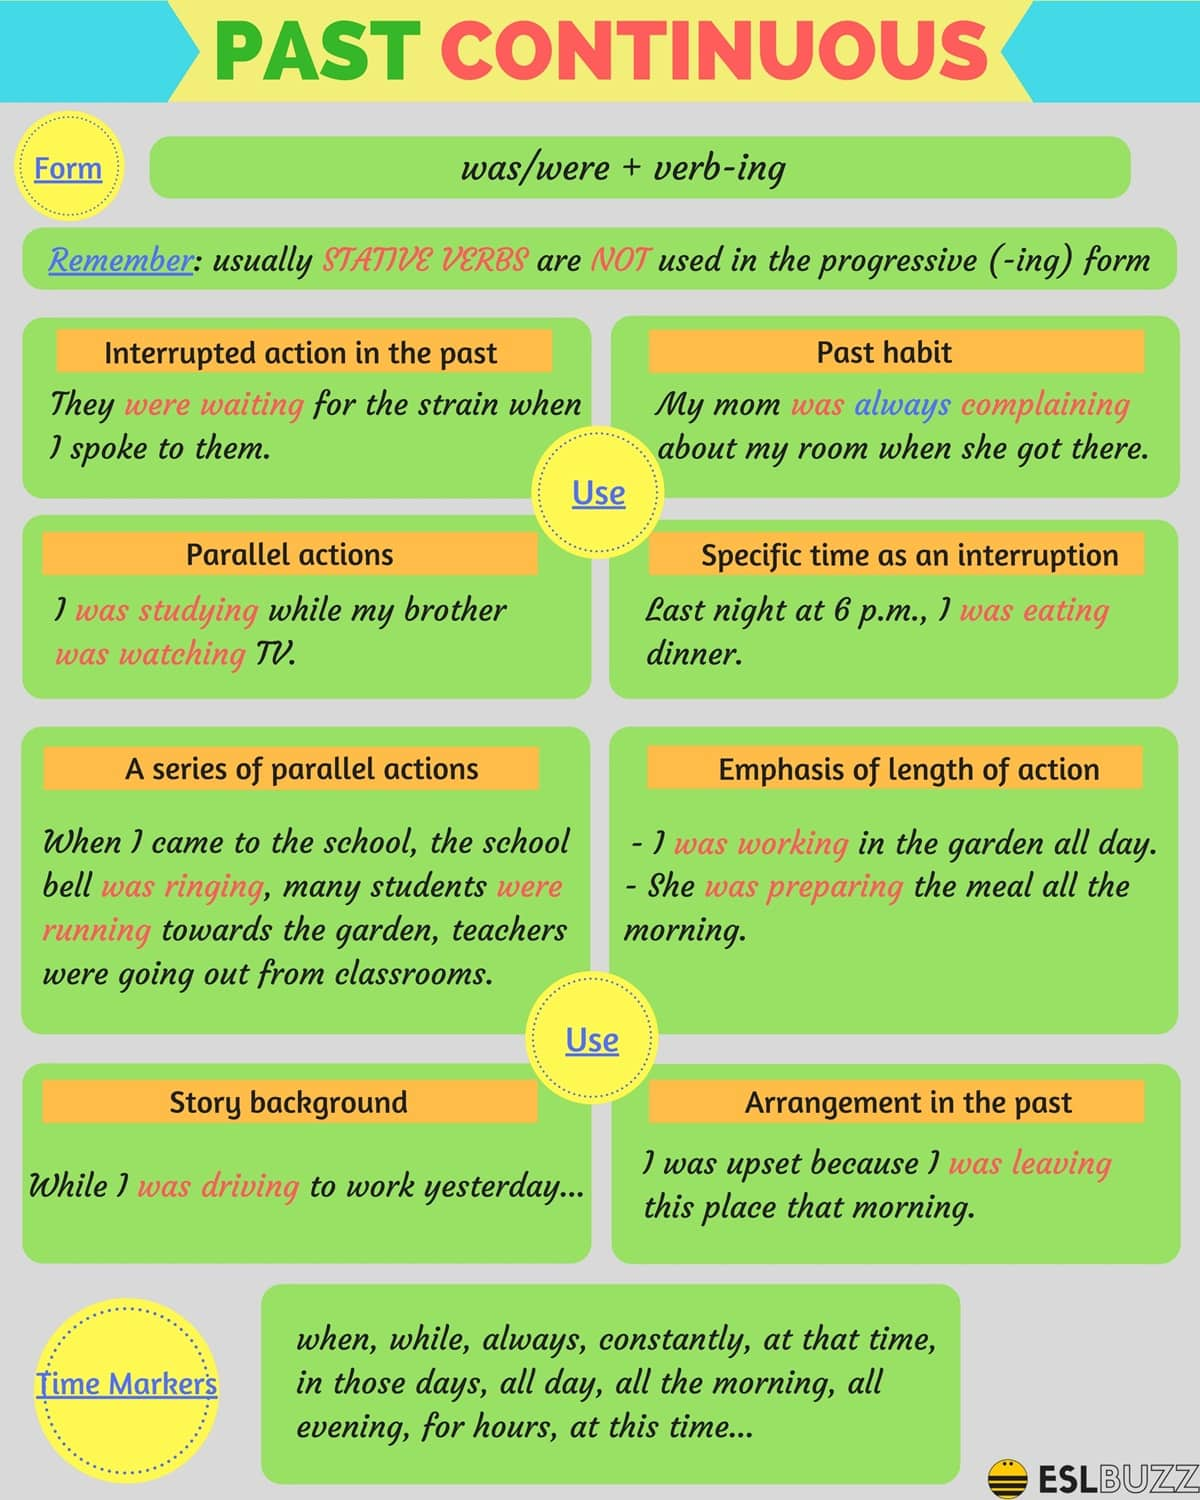 The Past Continuous Tense